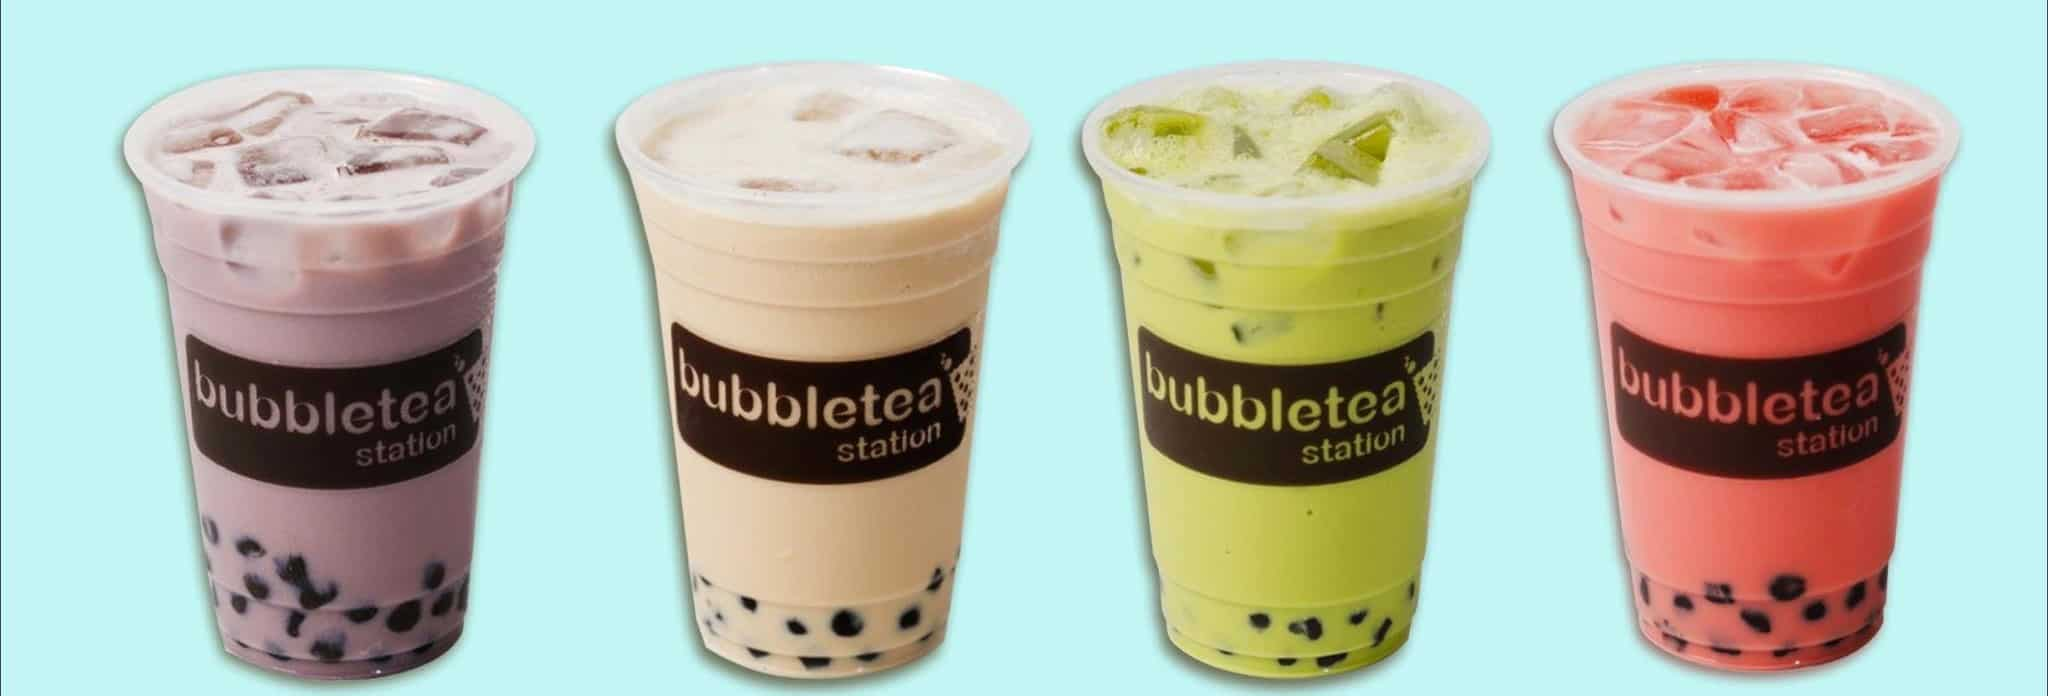 5 Bubble Tea Station cebu2